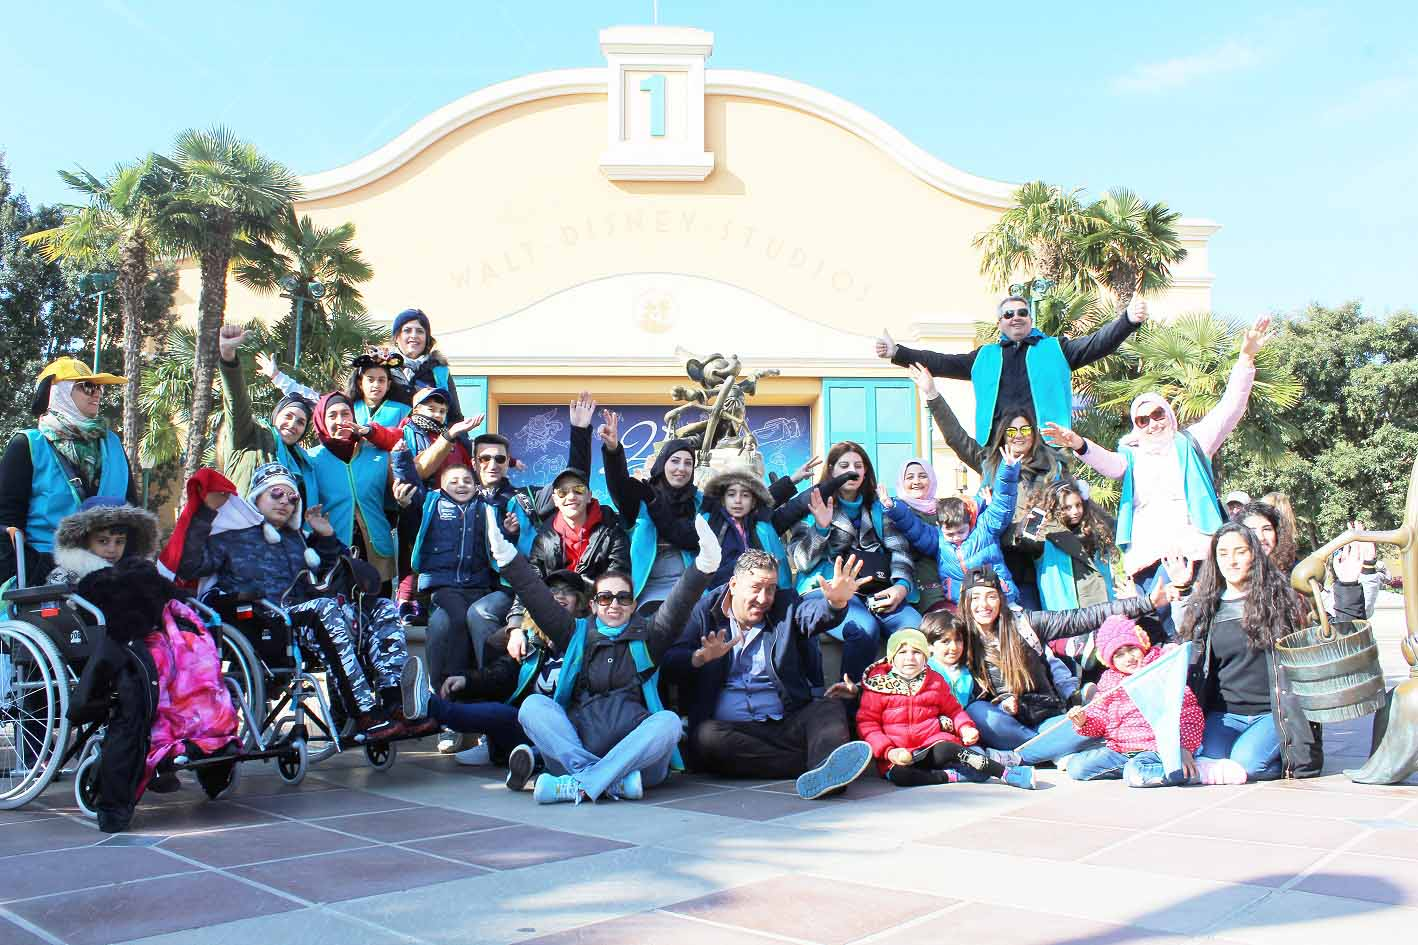 Extraordinary experience. Children and their parents visit Disneyland Paris with the help of Tamanna. (Courtesy of Tamanna)